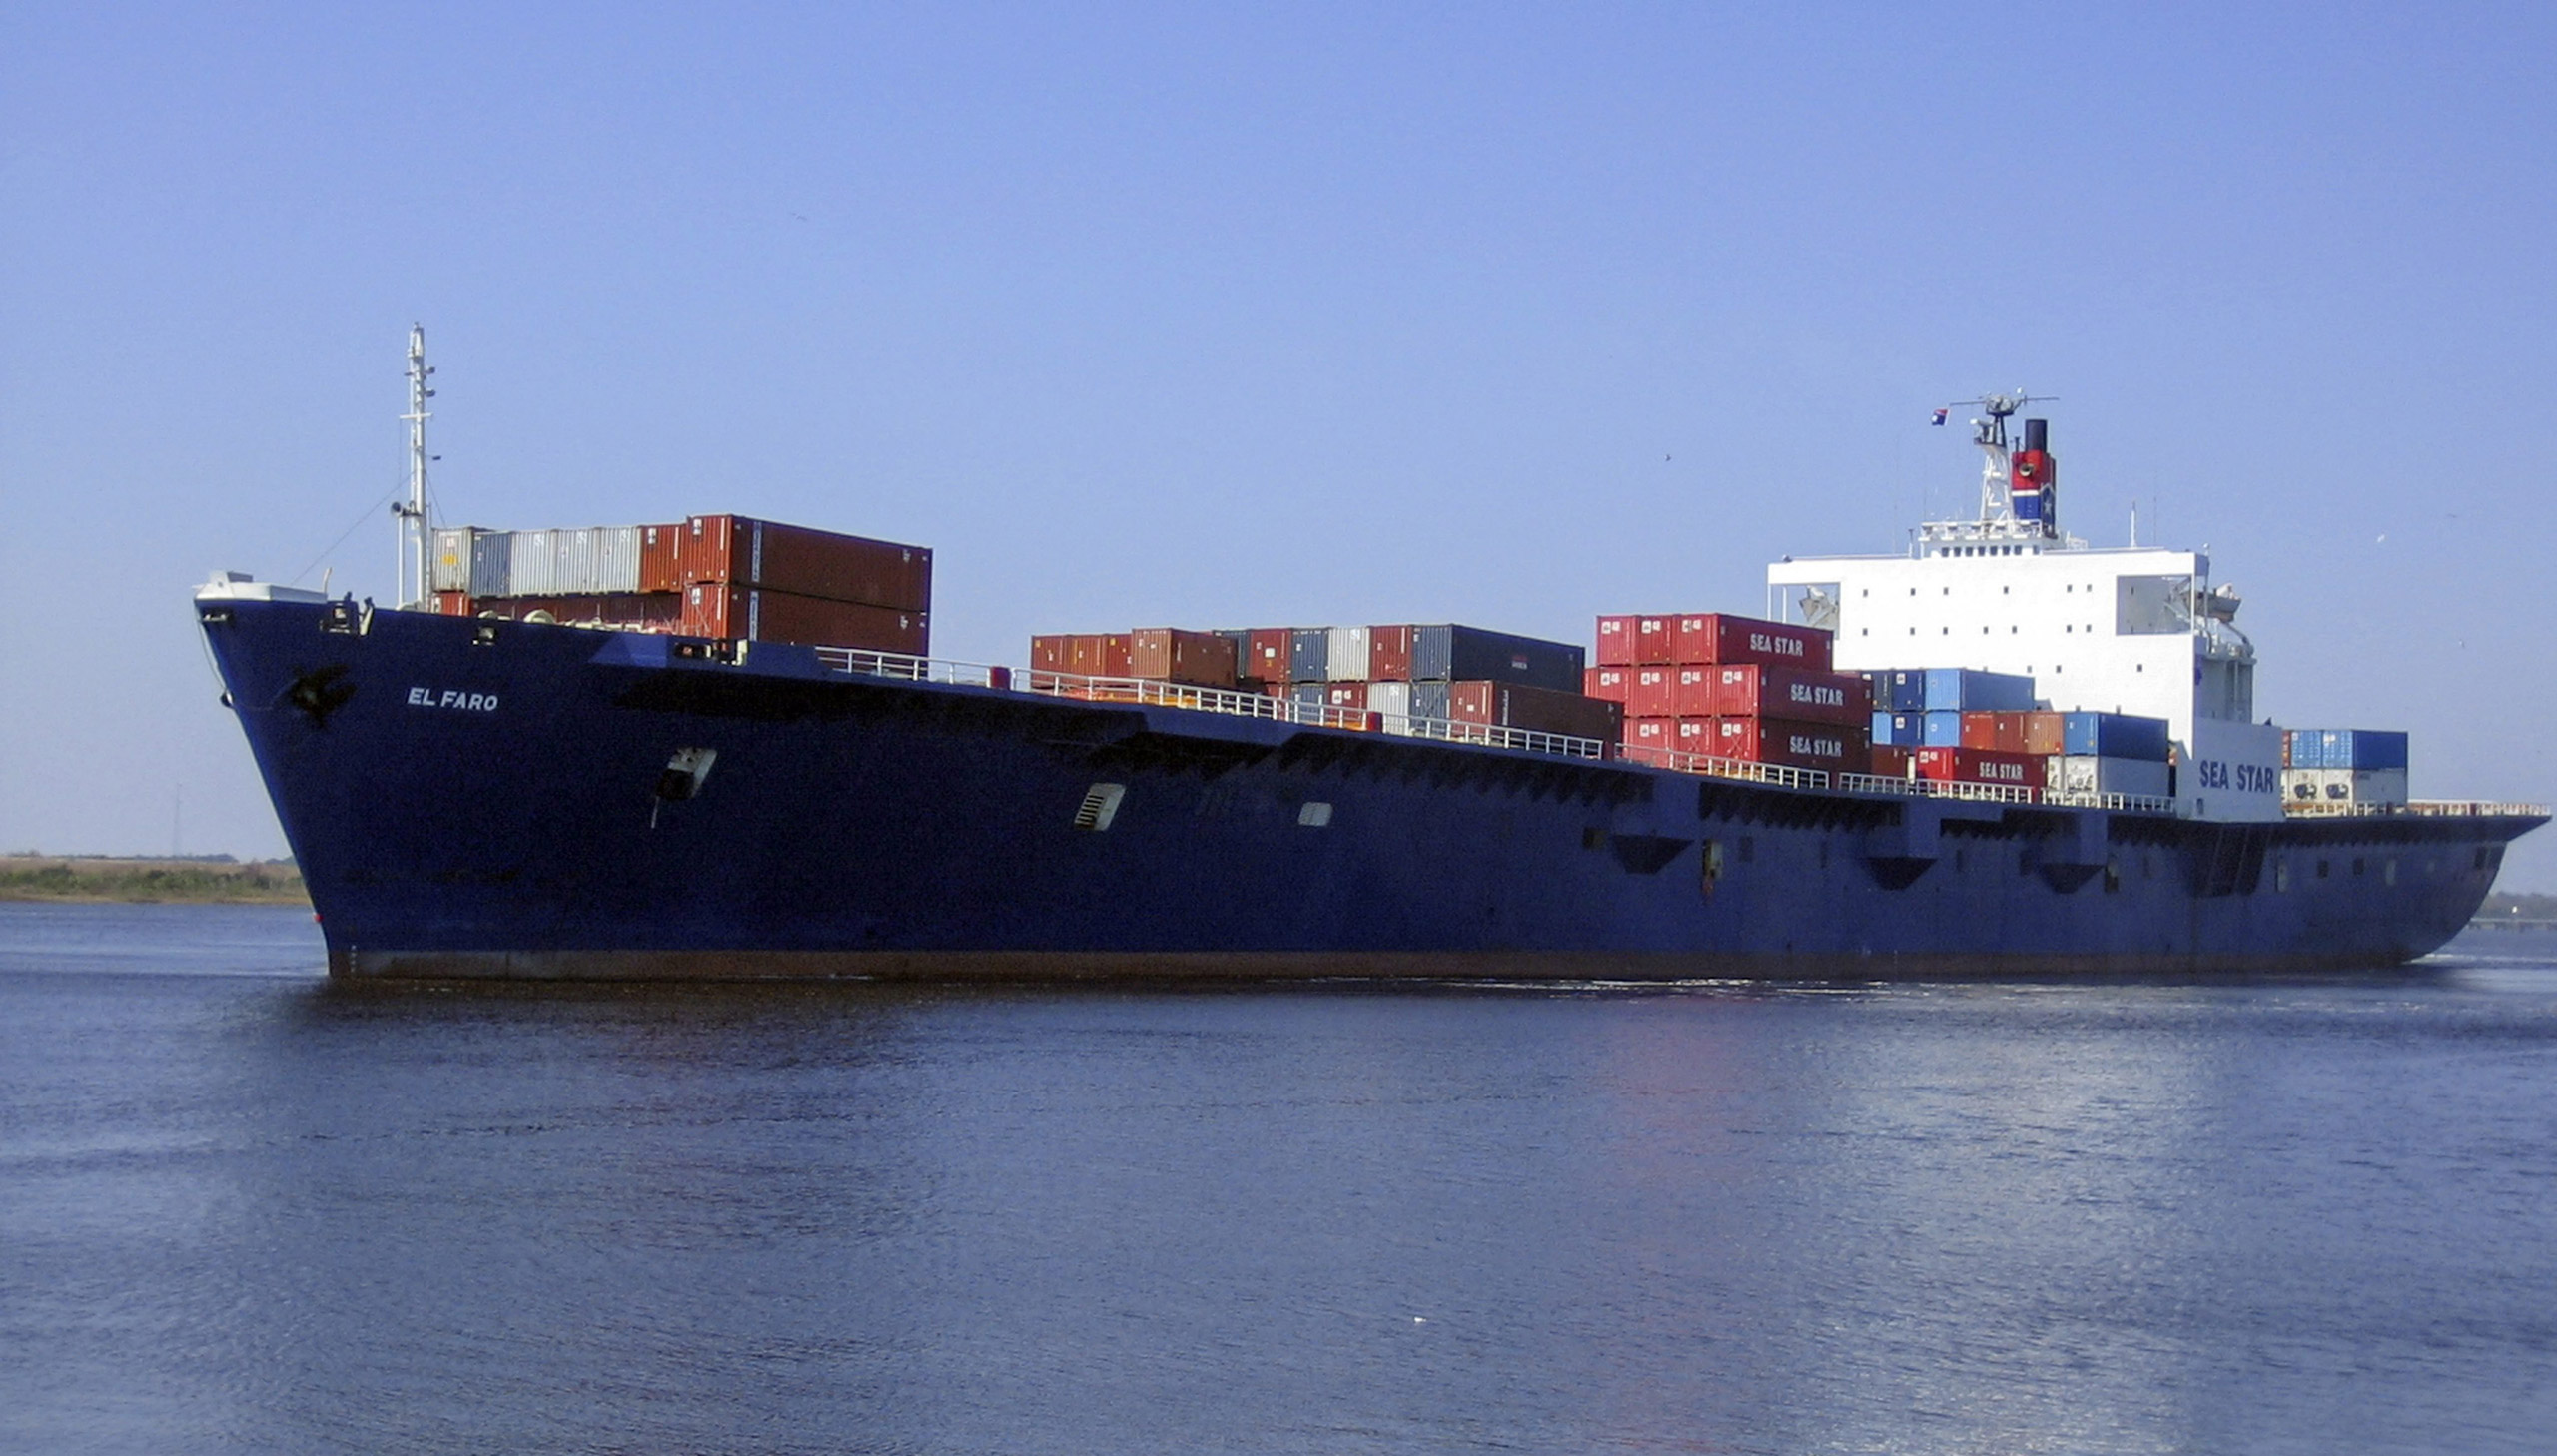 An undated handout file picture made available by TOTE Maritime shows the cargo ship El Faro at sea. A search team found what it said was the wreck of a cargo ship that sank during Hurricane Joaquin with the loss of 33 crew members, a US official said on Oct. 31, 2015.